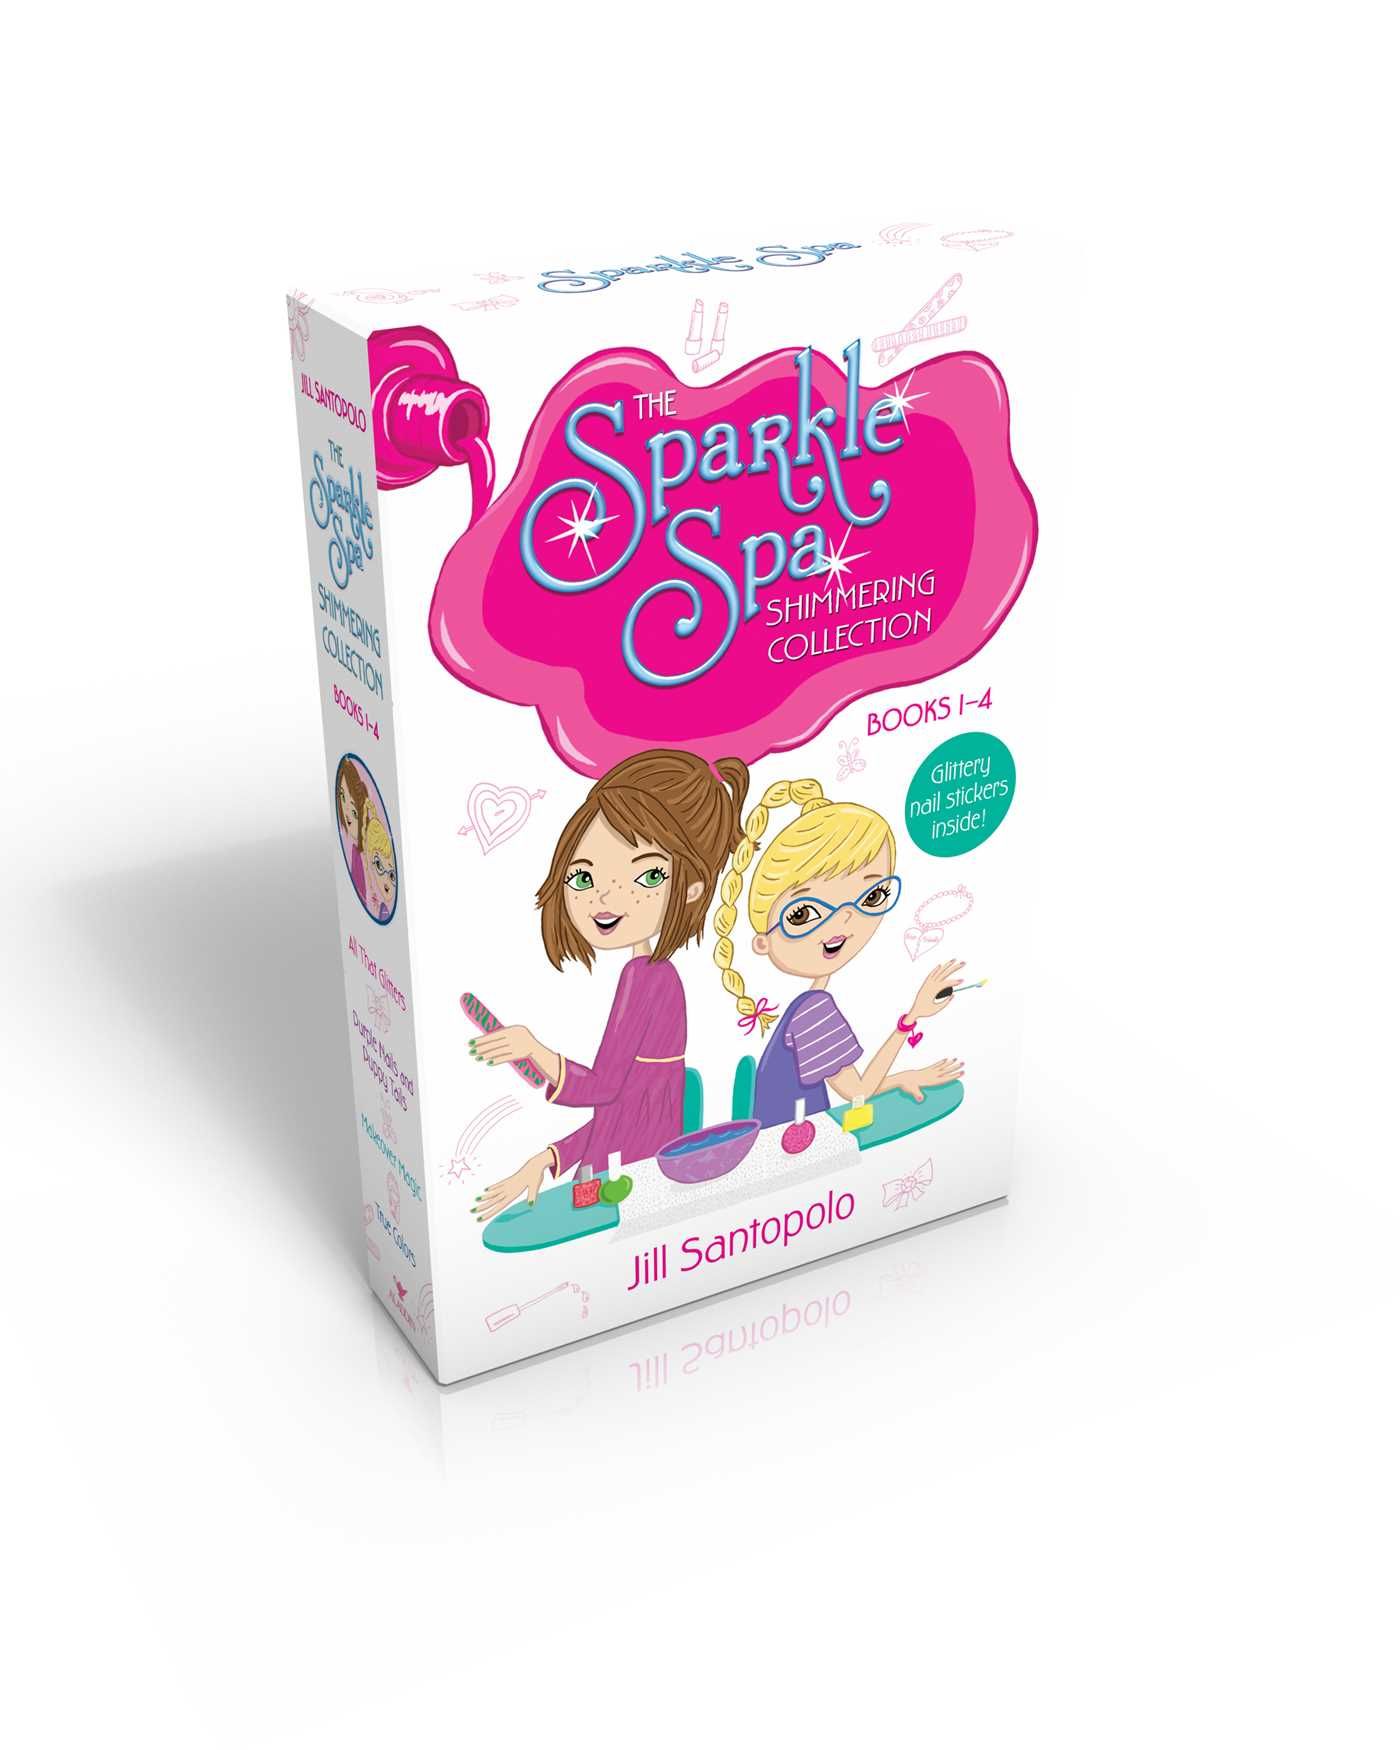 Sparkle-spa-shimmering-collection-books-1-4-nail-9781481416580_hr